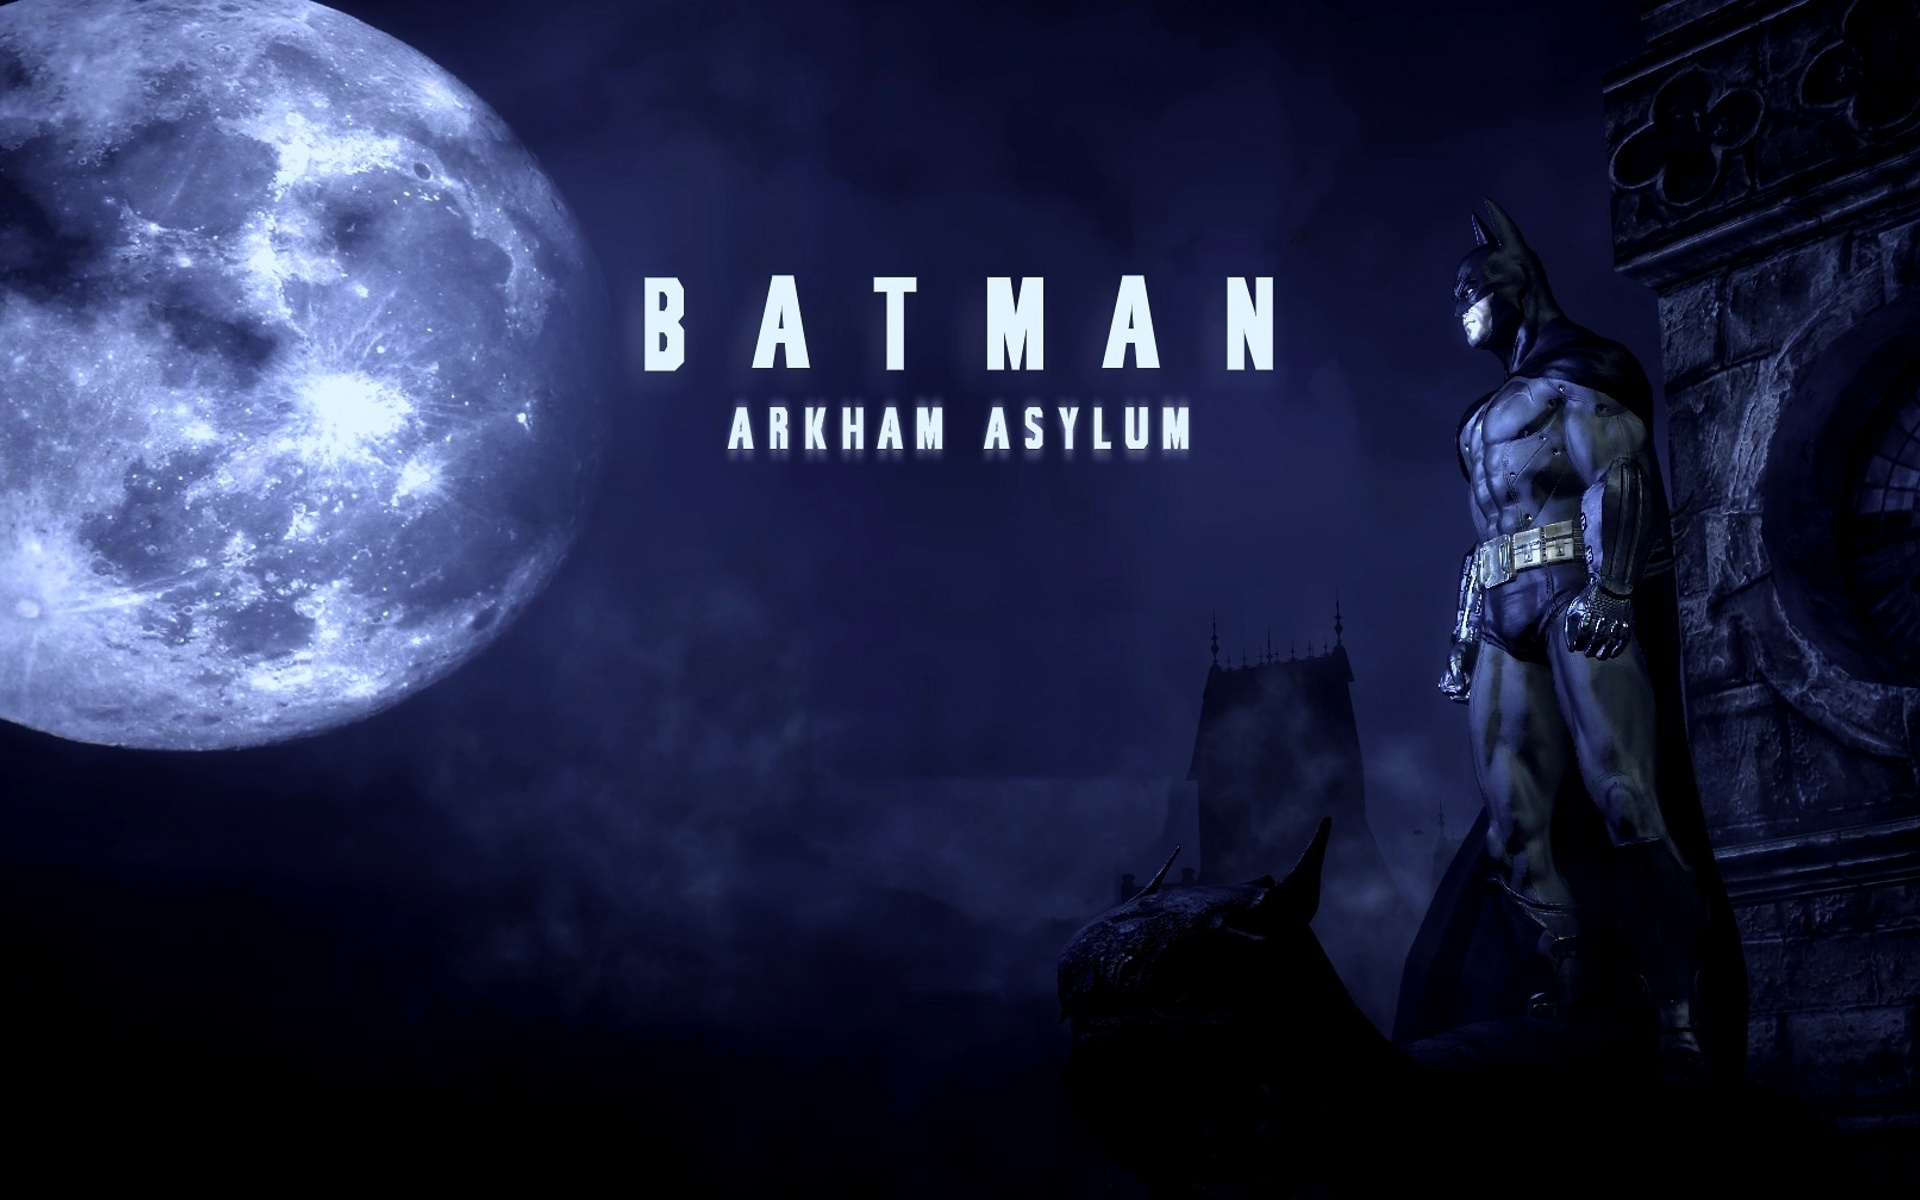 Batman Arkham Asylum Wallpaper: Batman Arkham Asylum Wallpaper 5